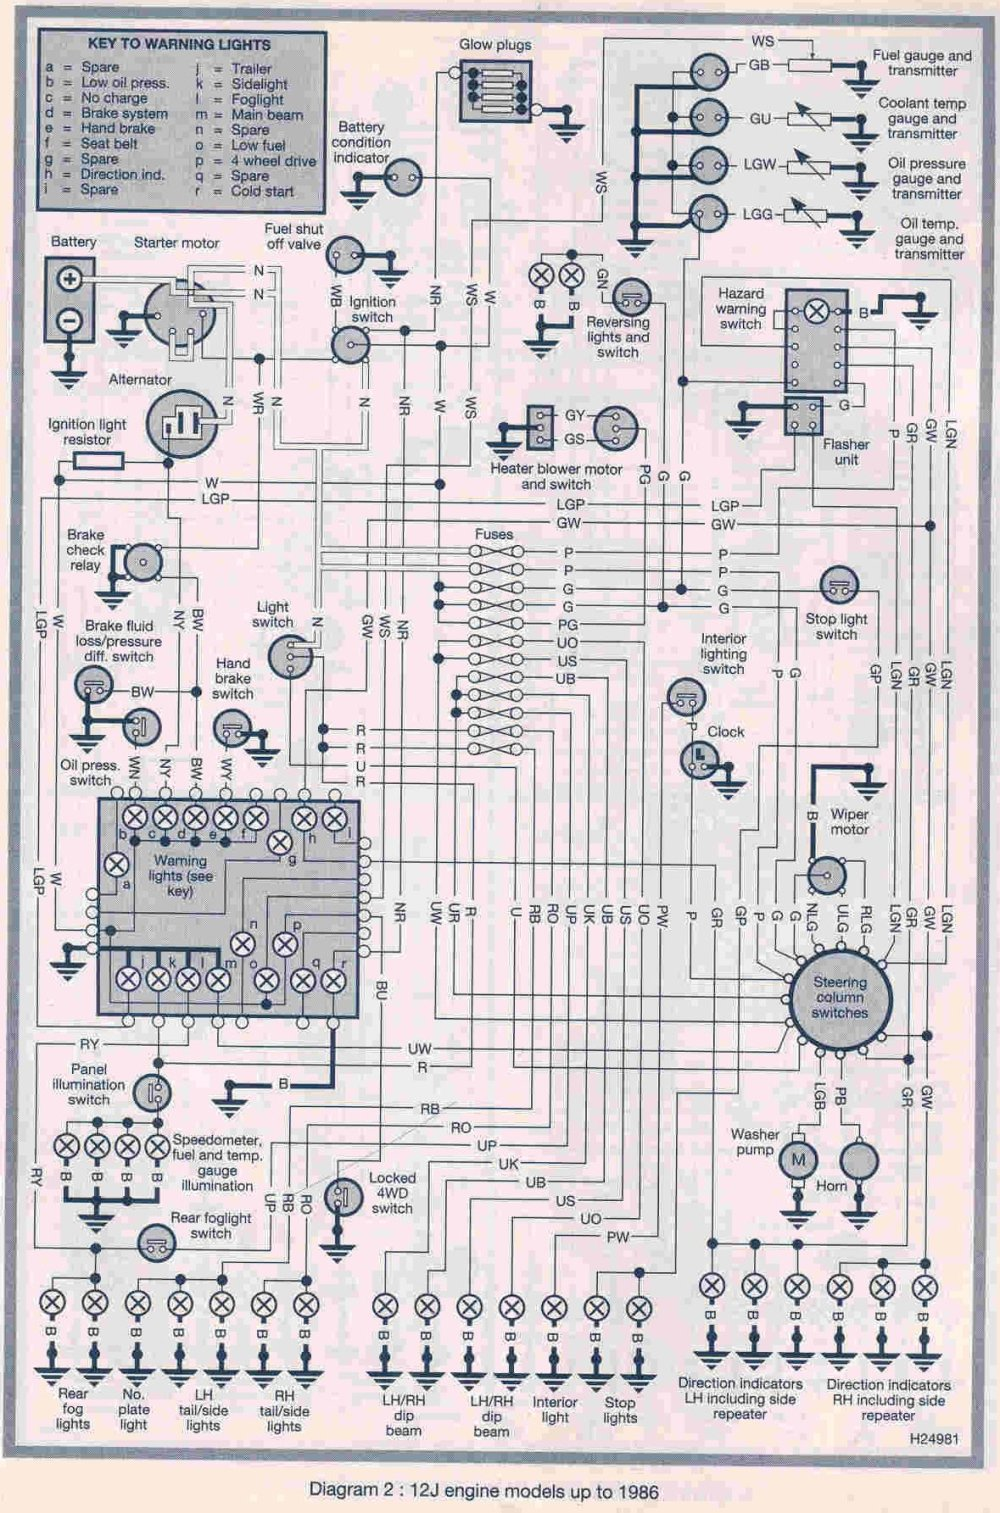 medium resolution of 1986 land rover 90 wiring diagram wiring diagrams konsult1986 land rover 90 wiring diagram wiring library